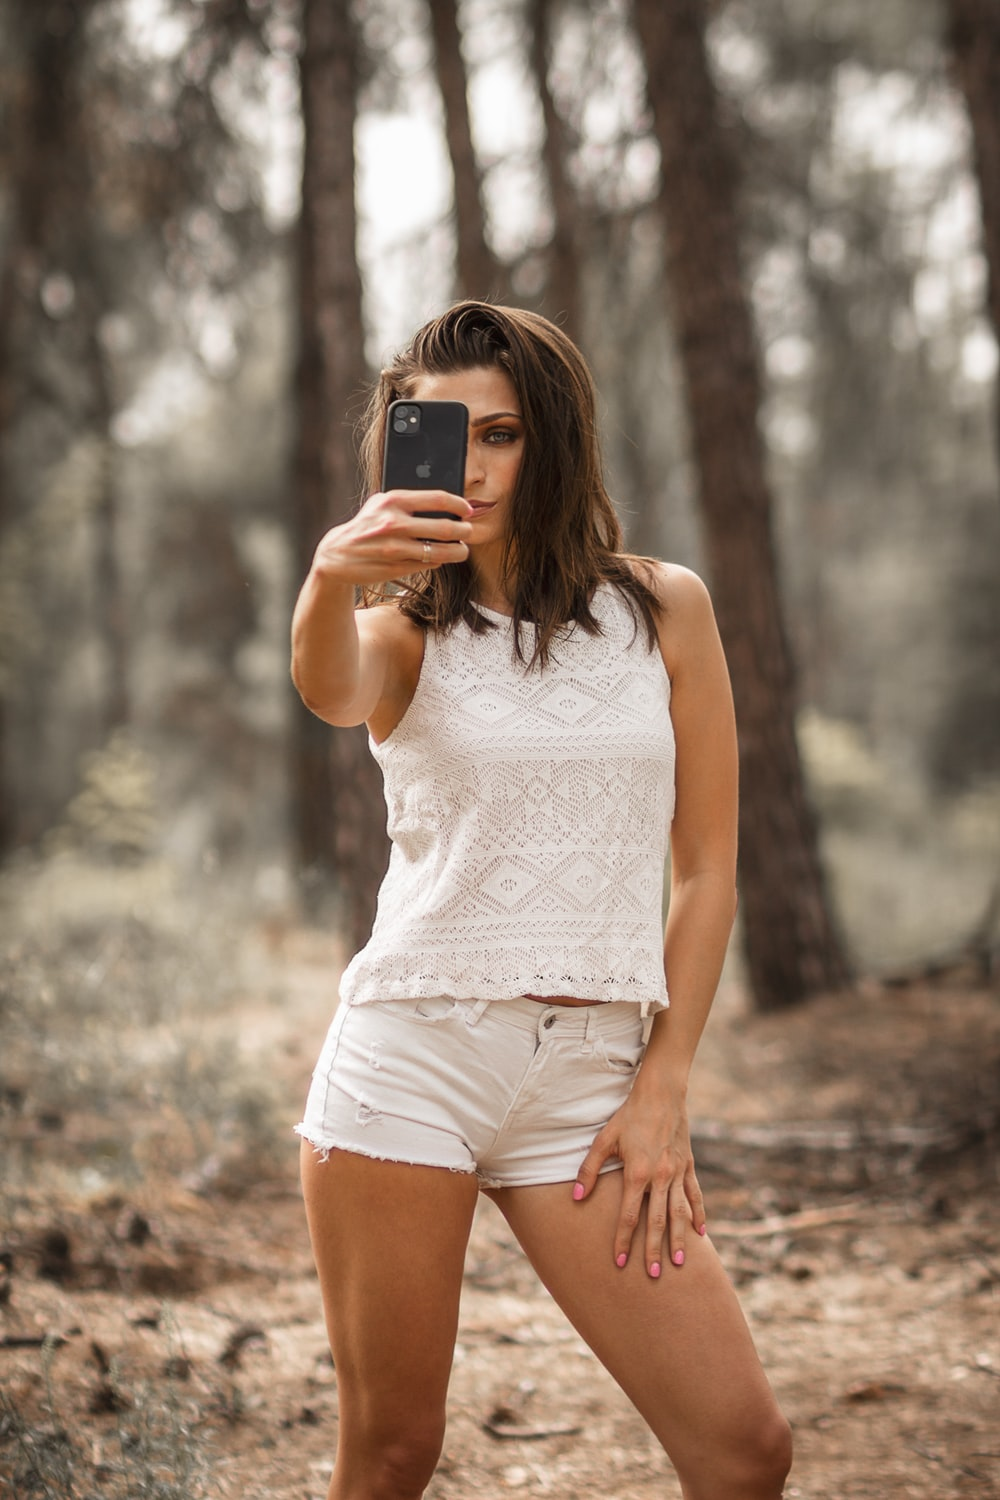 woman in white tank top holding black smartphone